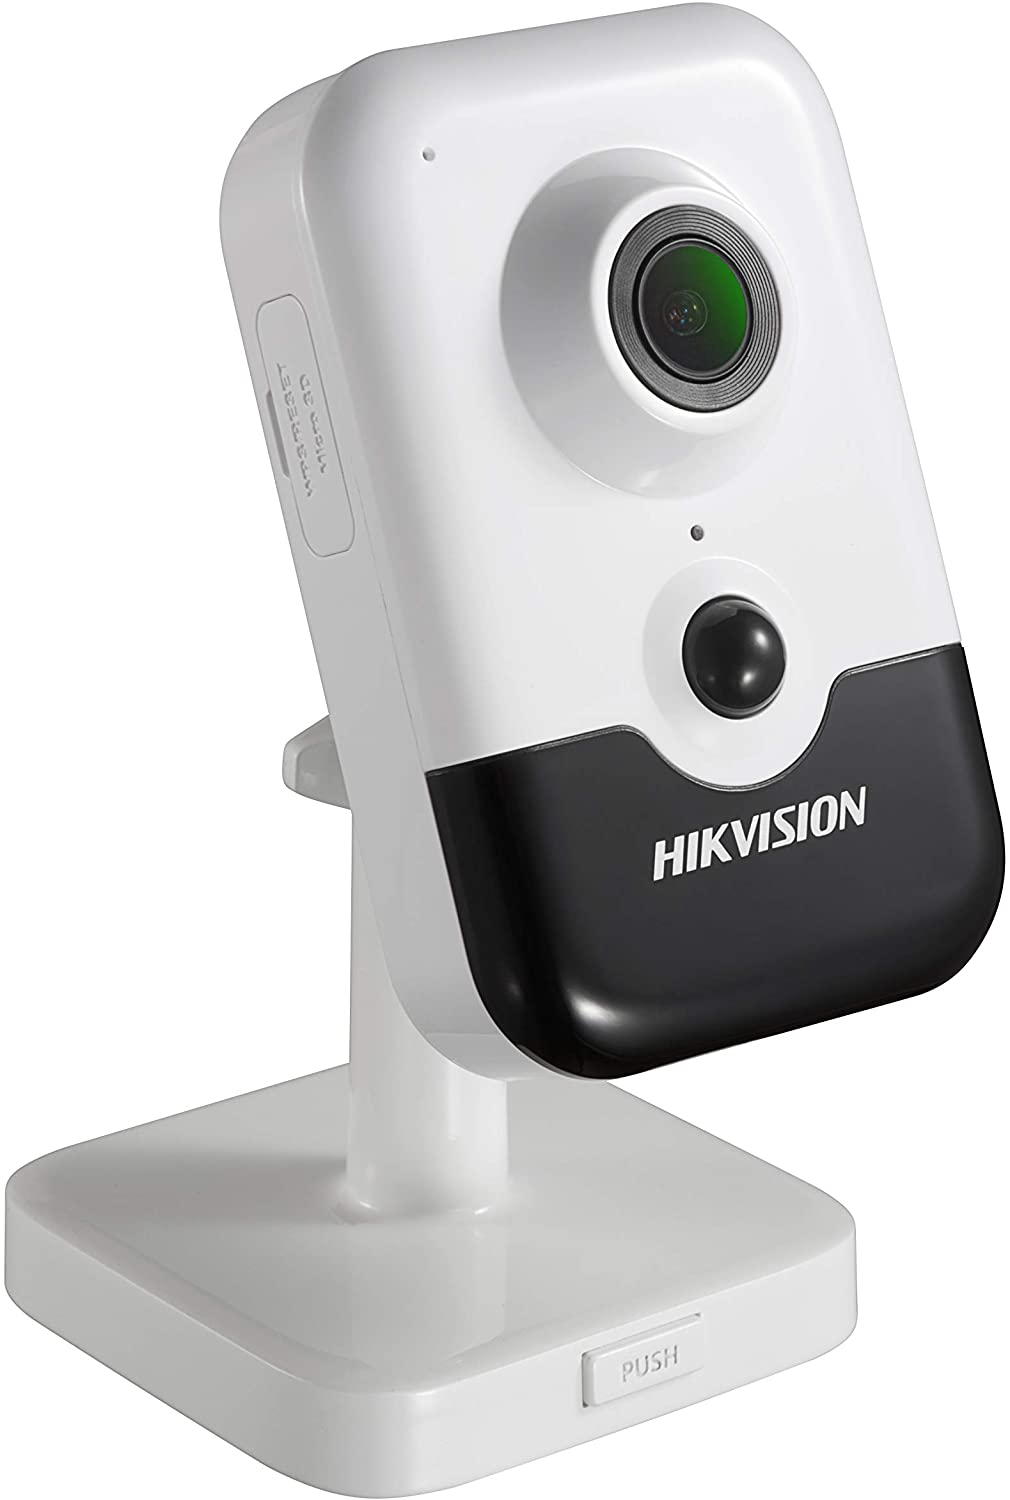 HIKVISION PRO  DS-2CD2443G0-IW(2.8mm)